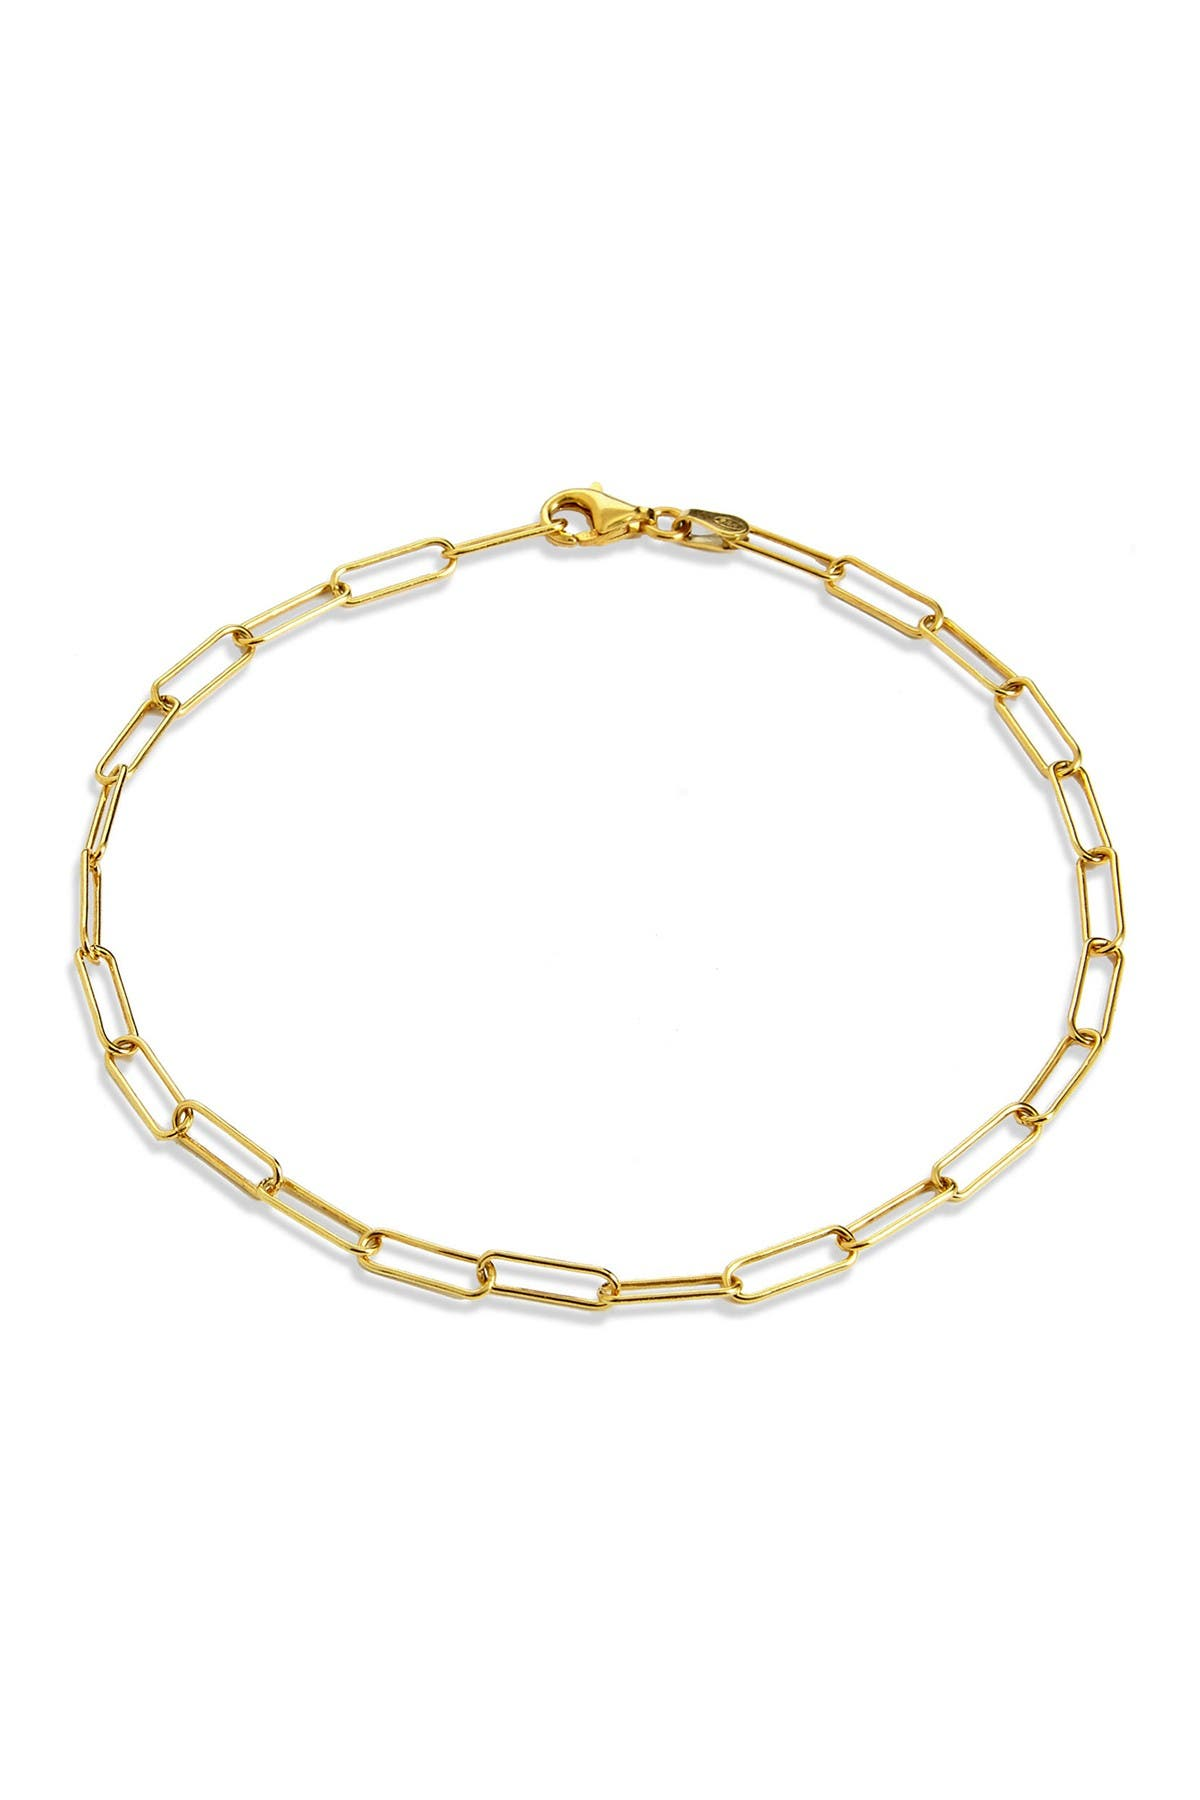 Image of Savvy Cie 18K Italian Yellow Gold Vermeil Chain Link Anklet